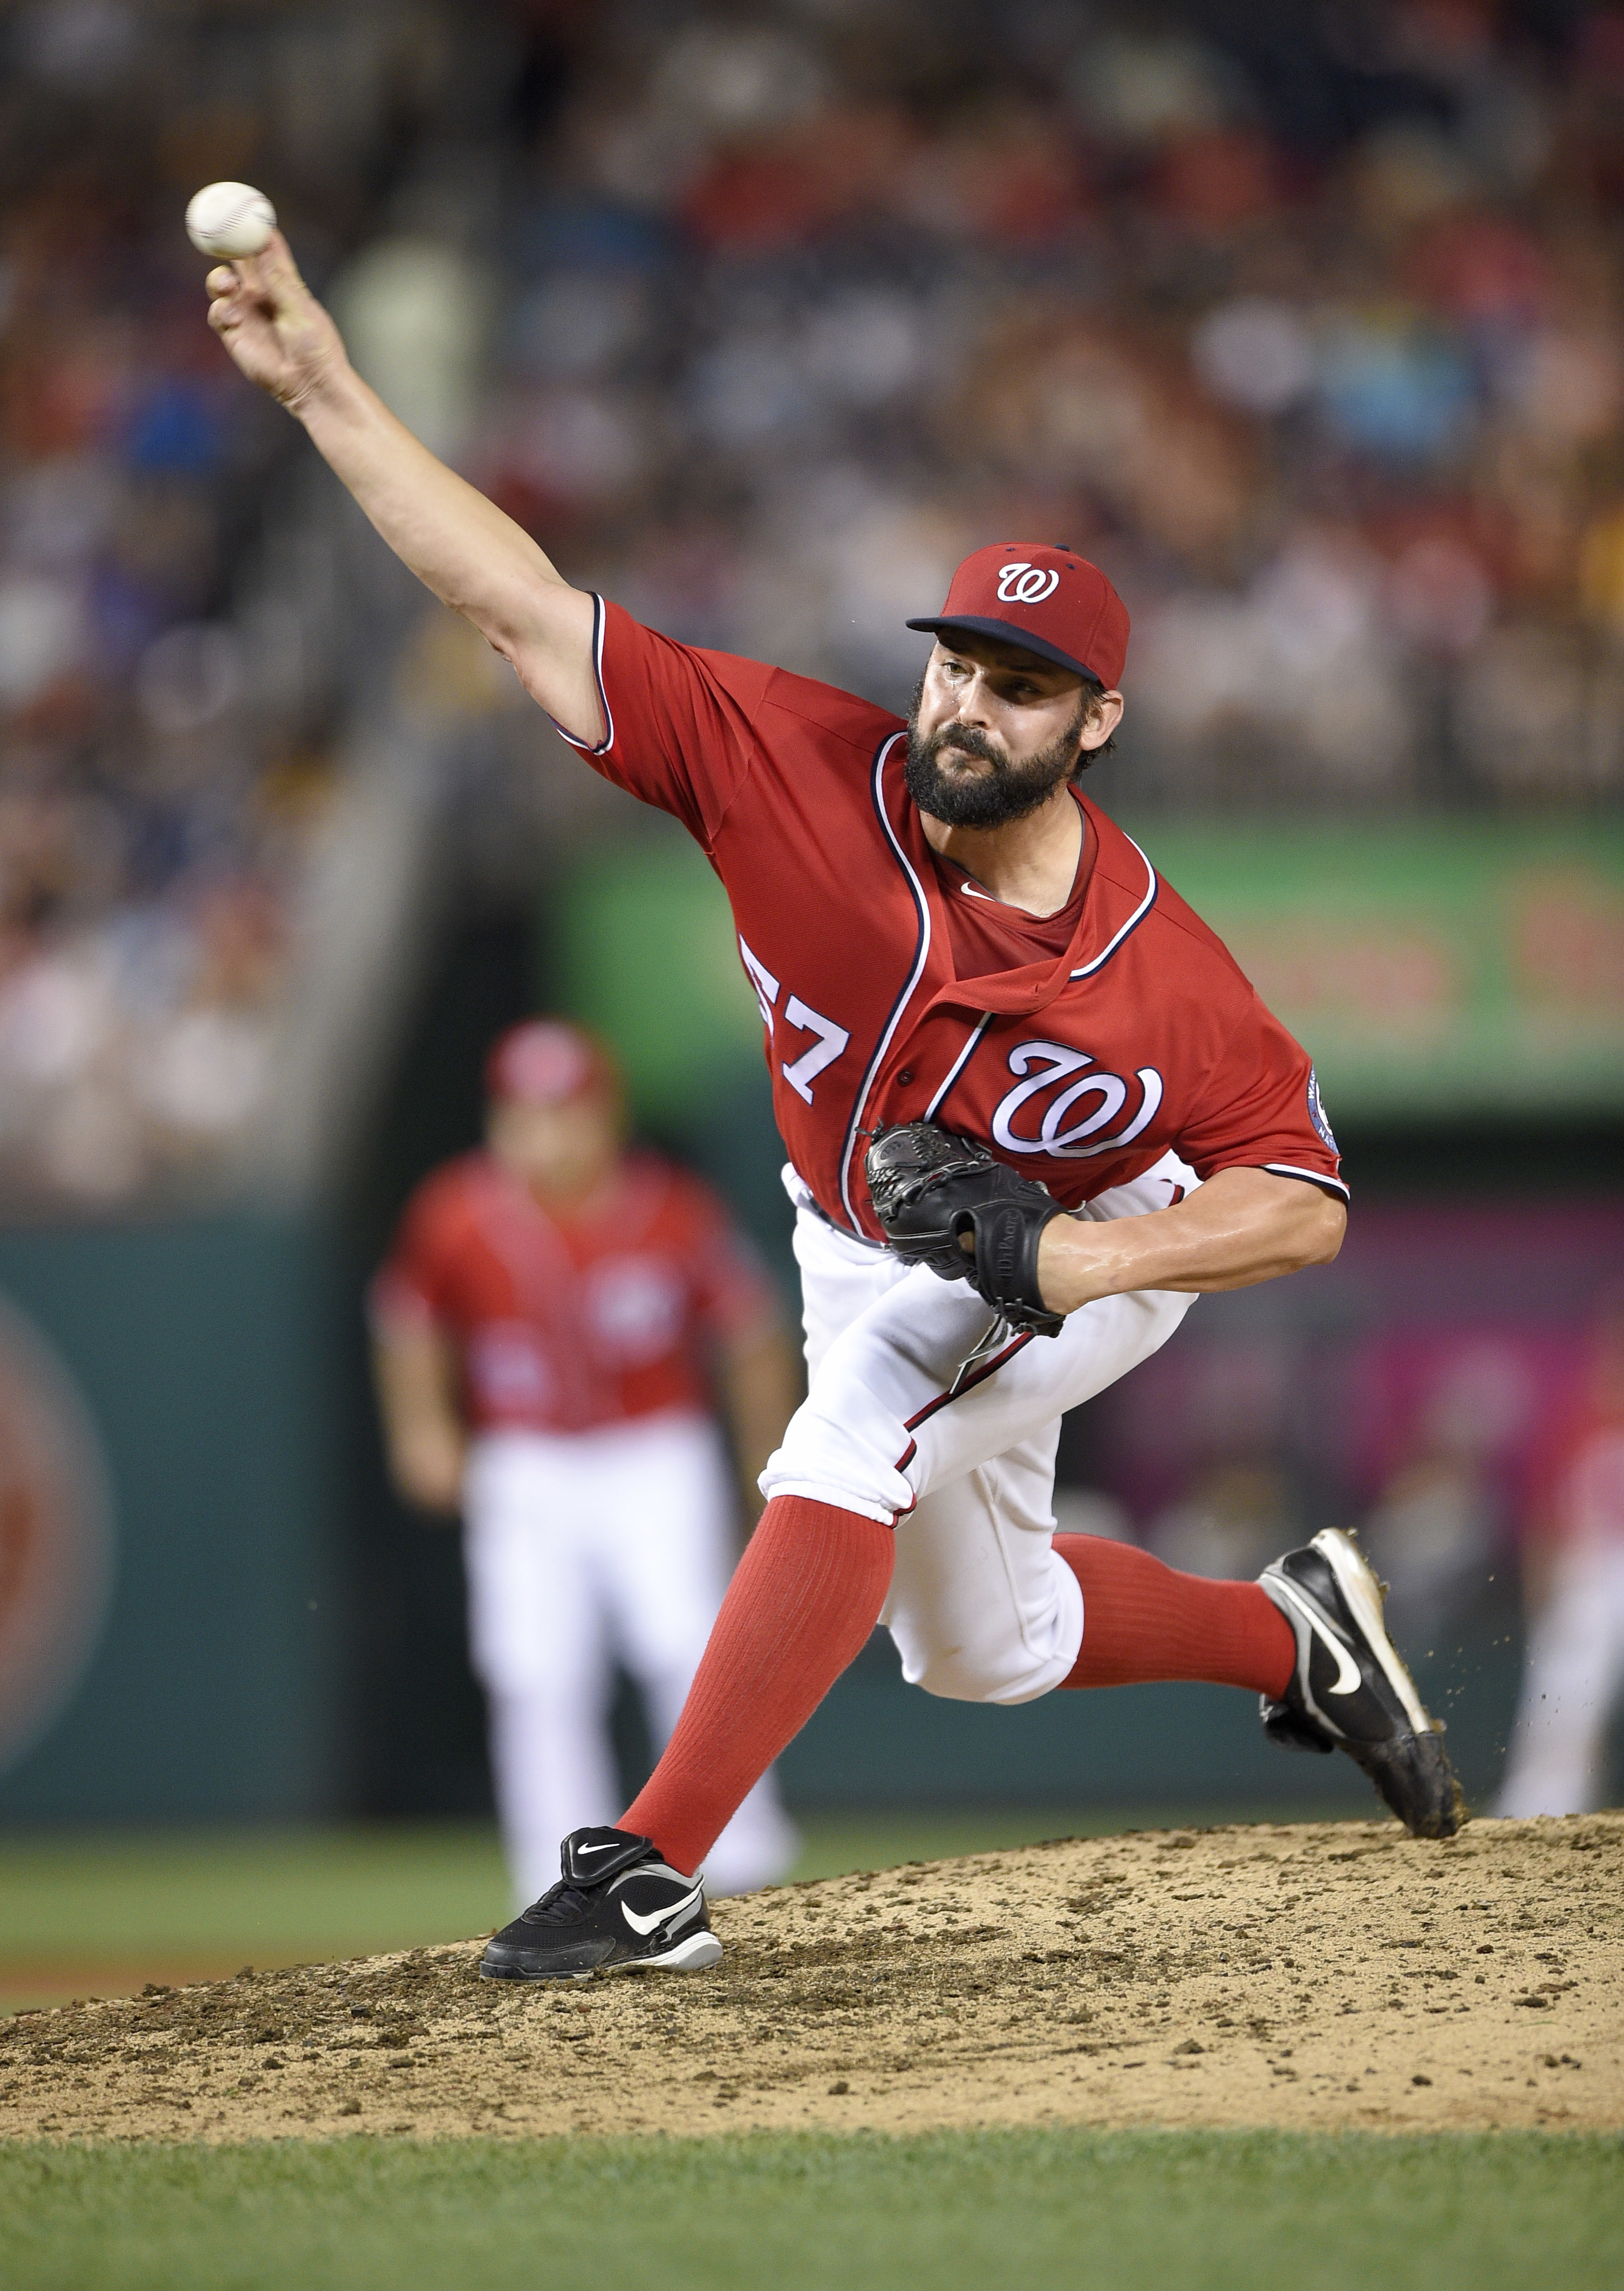 Washington Nationals starter Tanner Roark delivers a pitch during the eighth inning of a baseball game against the Pittsburgh Pirates, Saturday, July 16, 2016, in Washington. The Nationals won 6-0. (AP Photo/Nick Wass)